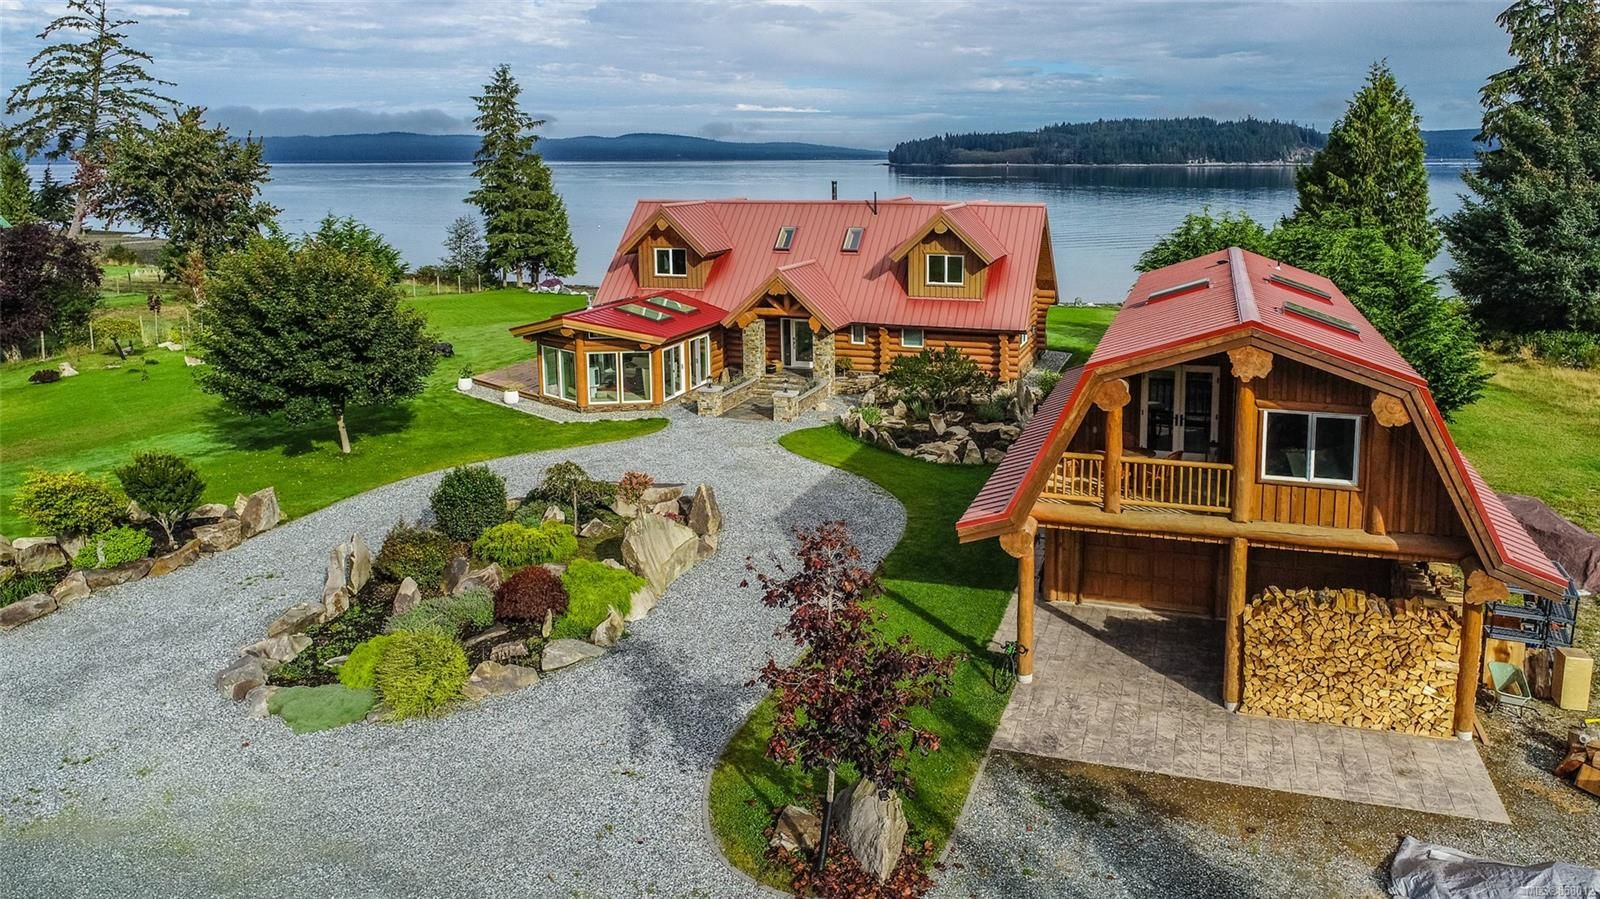 Photo 46: Photos: 6030 MINE Rd in : NI Port McNeill House for sale (North Island)  : MLS®# 858012